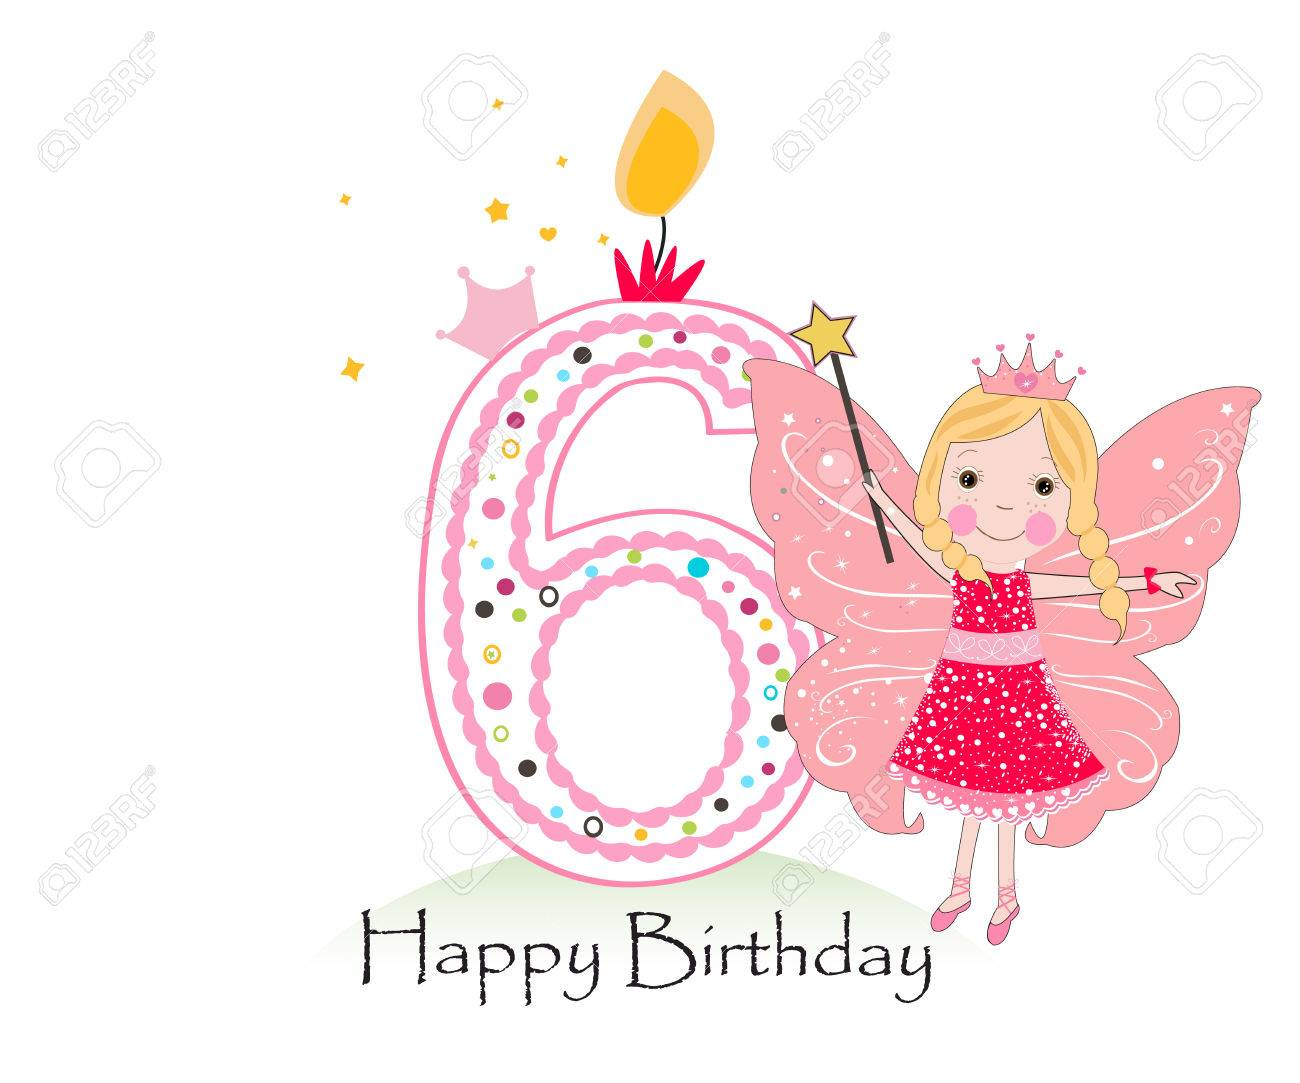 Happy Sixth Birthday Candle Baby Girl Greeting Card With Fairy Tale Vector Background Stock